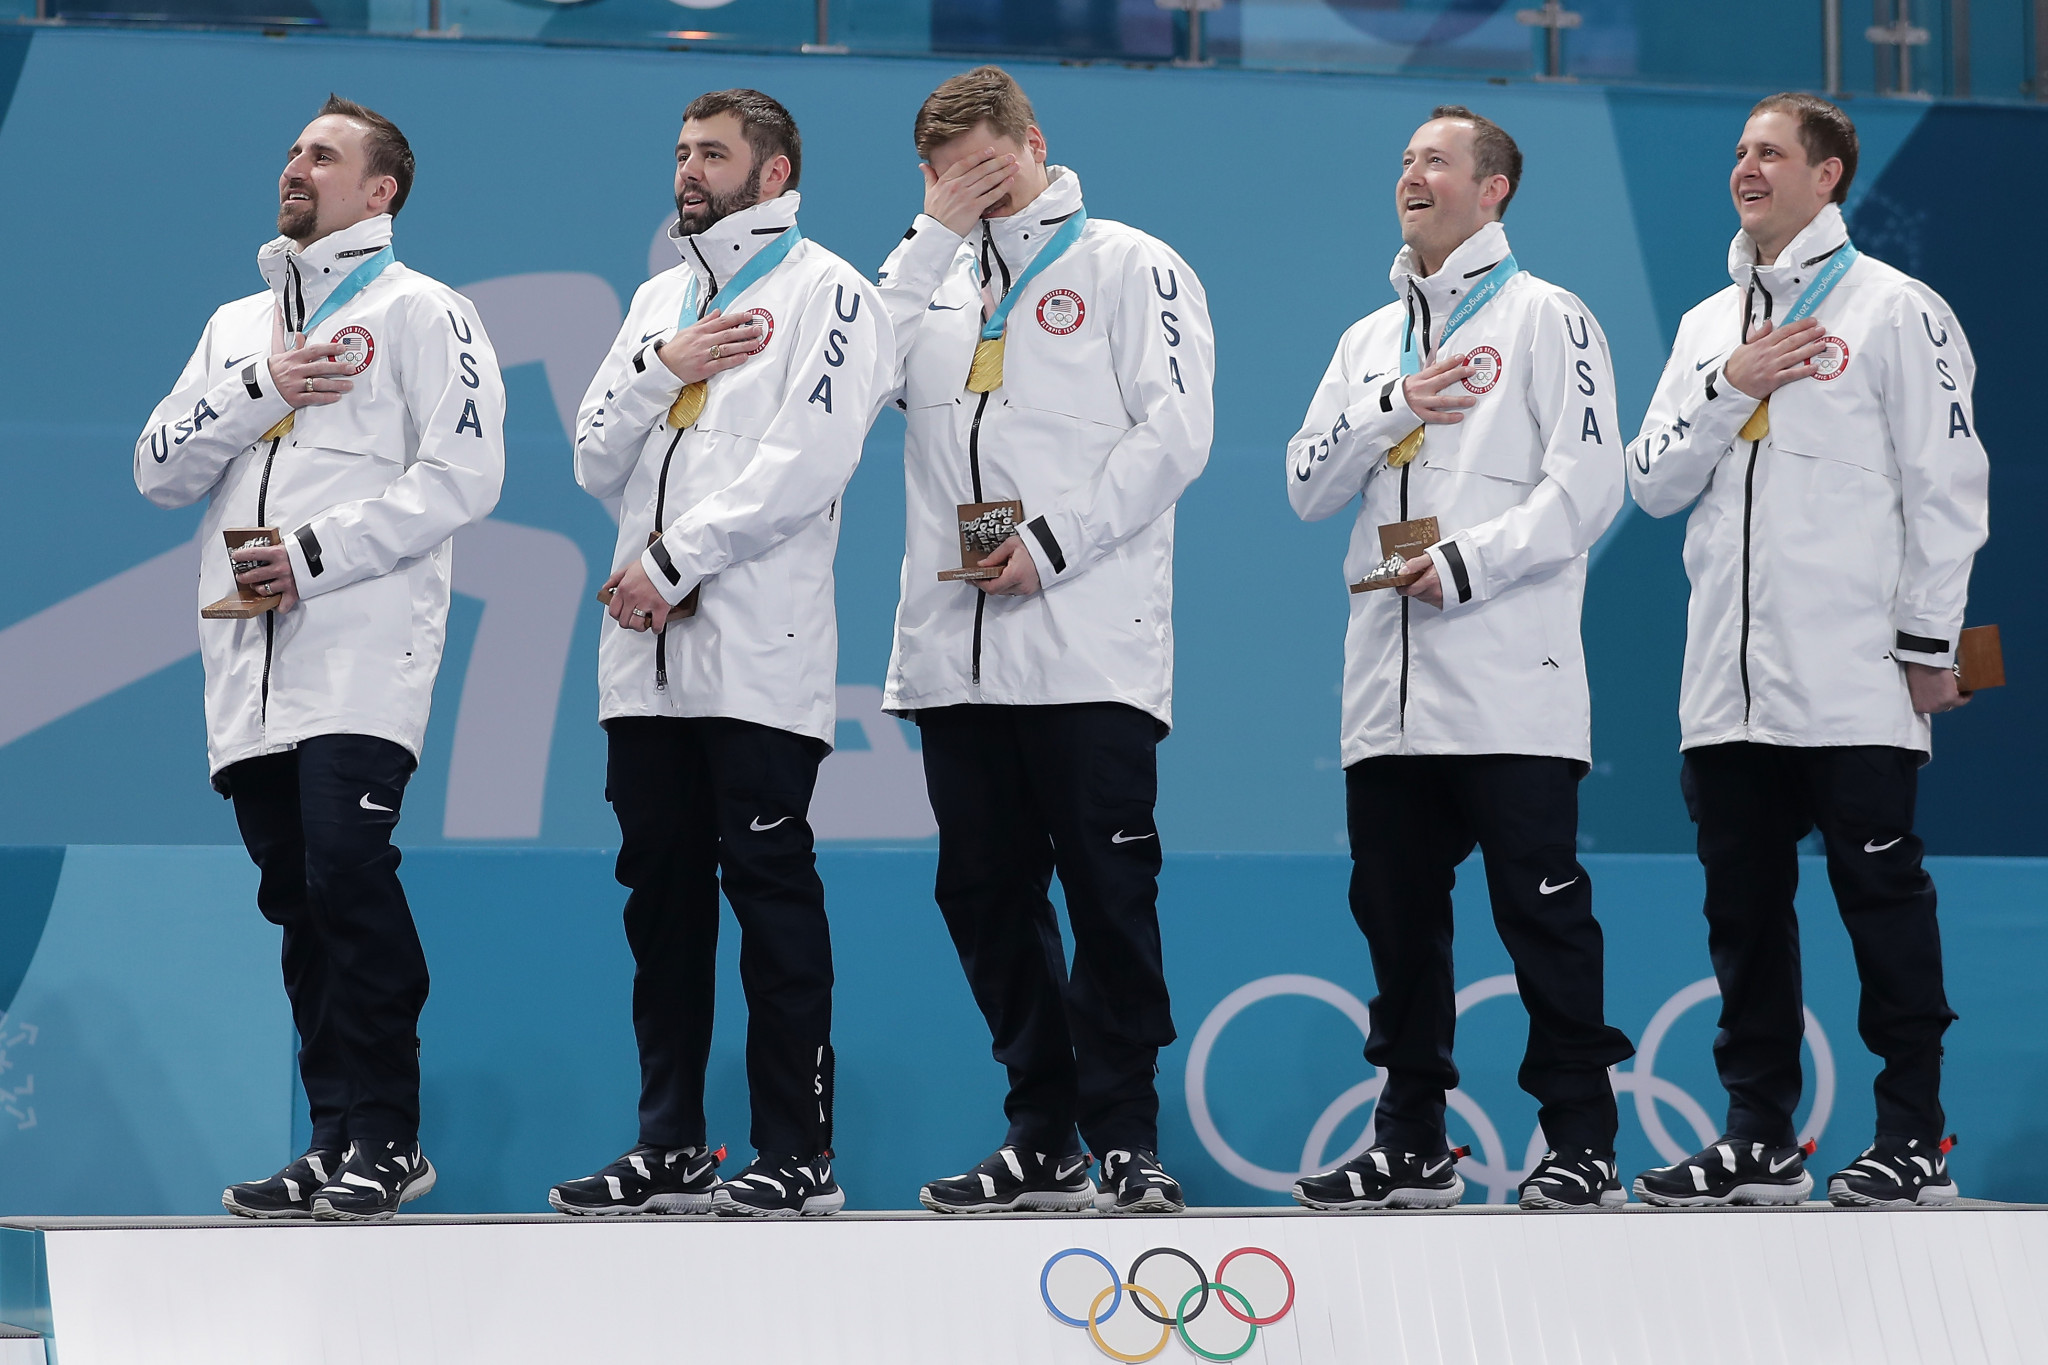 The United States beat Sweden 10-7 to claim their first-ever Olympic men's curling title on day 15 of Pyeongchang 2018 ©Getty Images